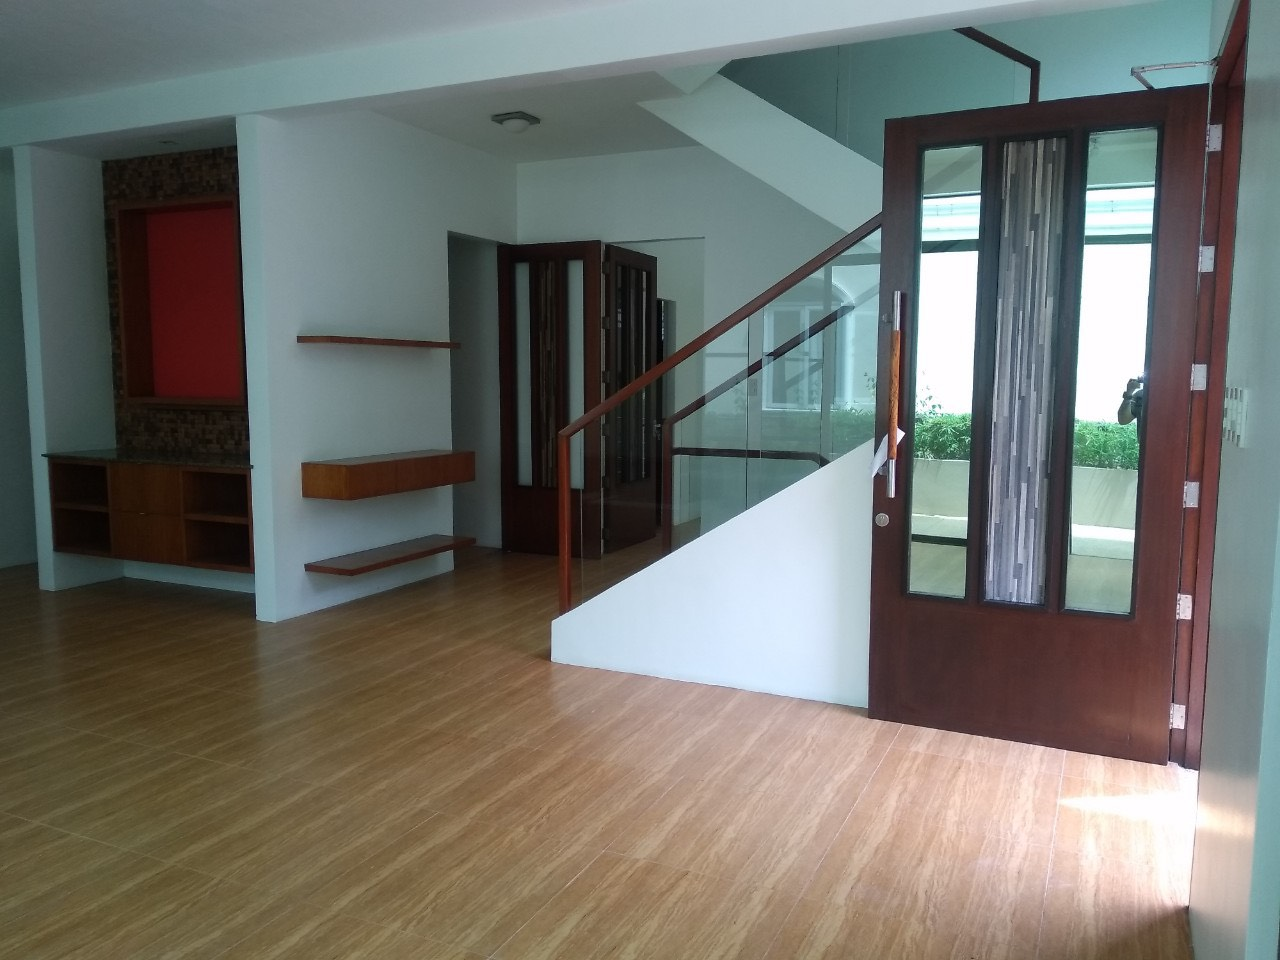 5 Bedrooms House For Rent, McKinley Hill Village 12